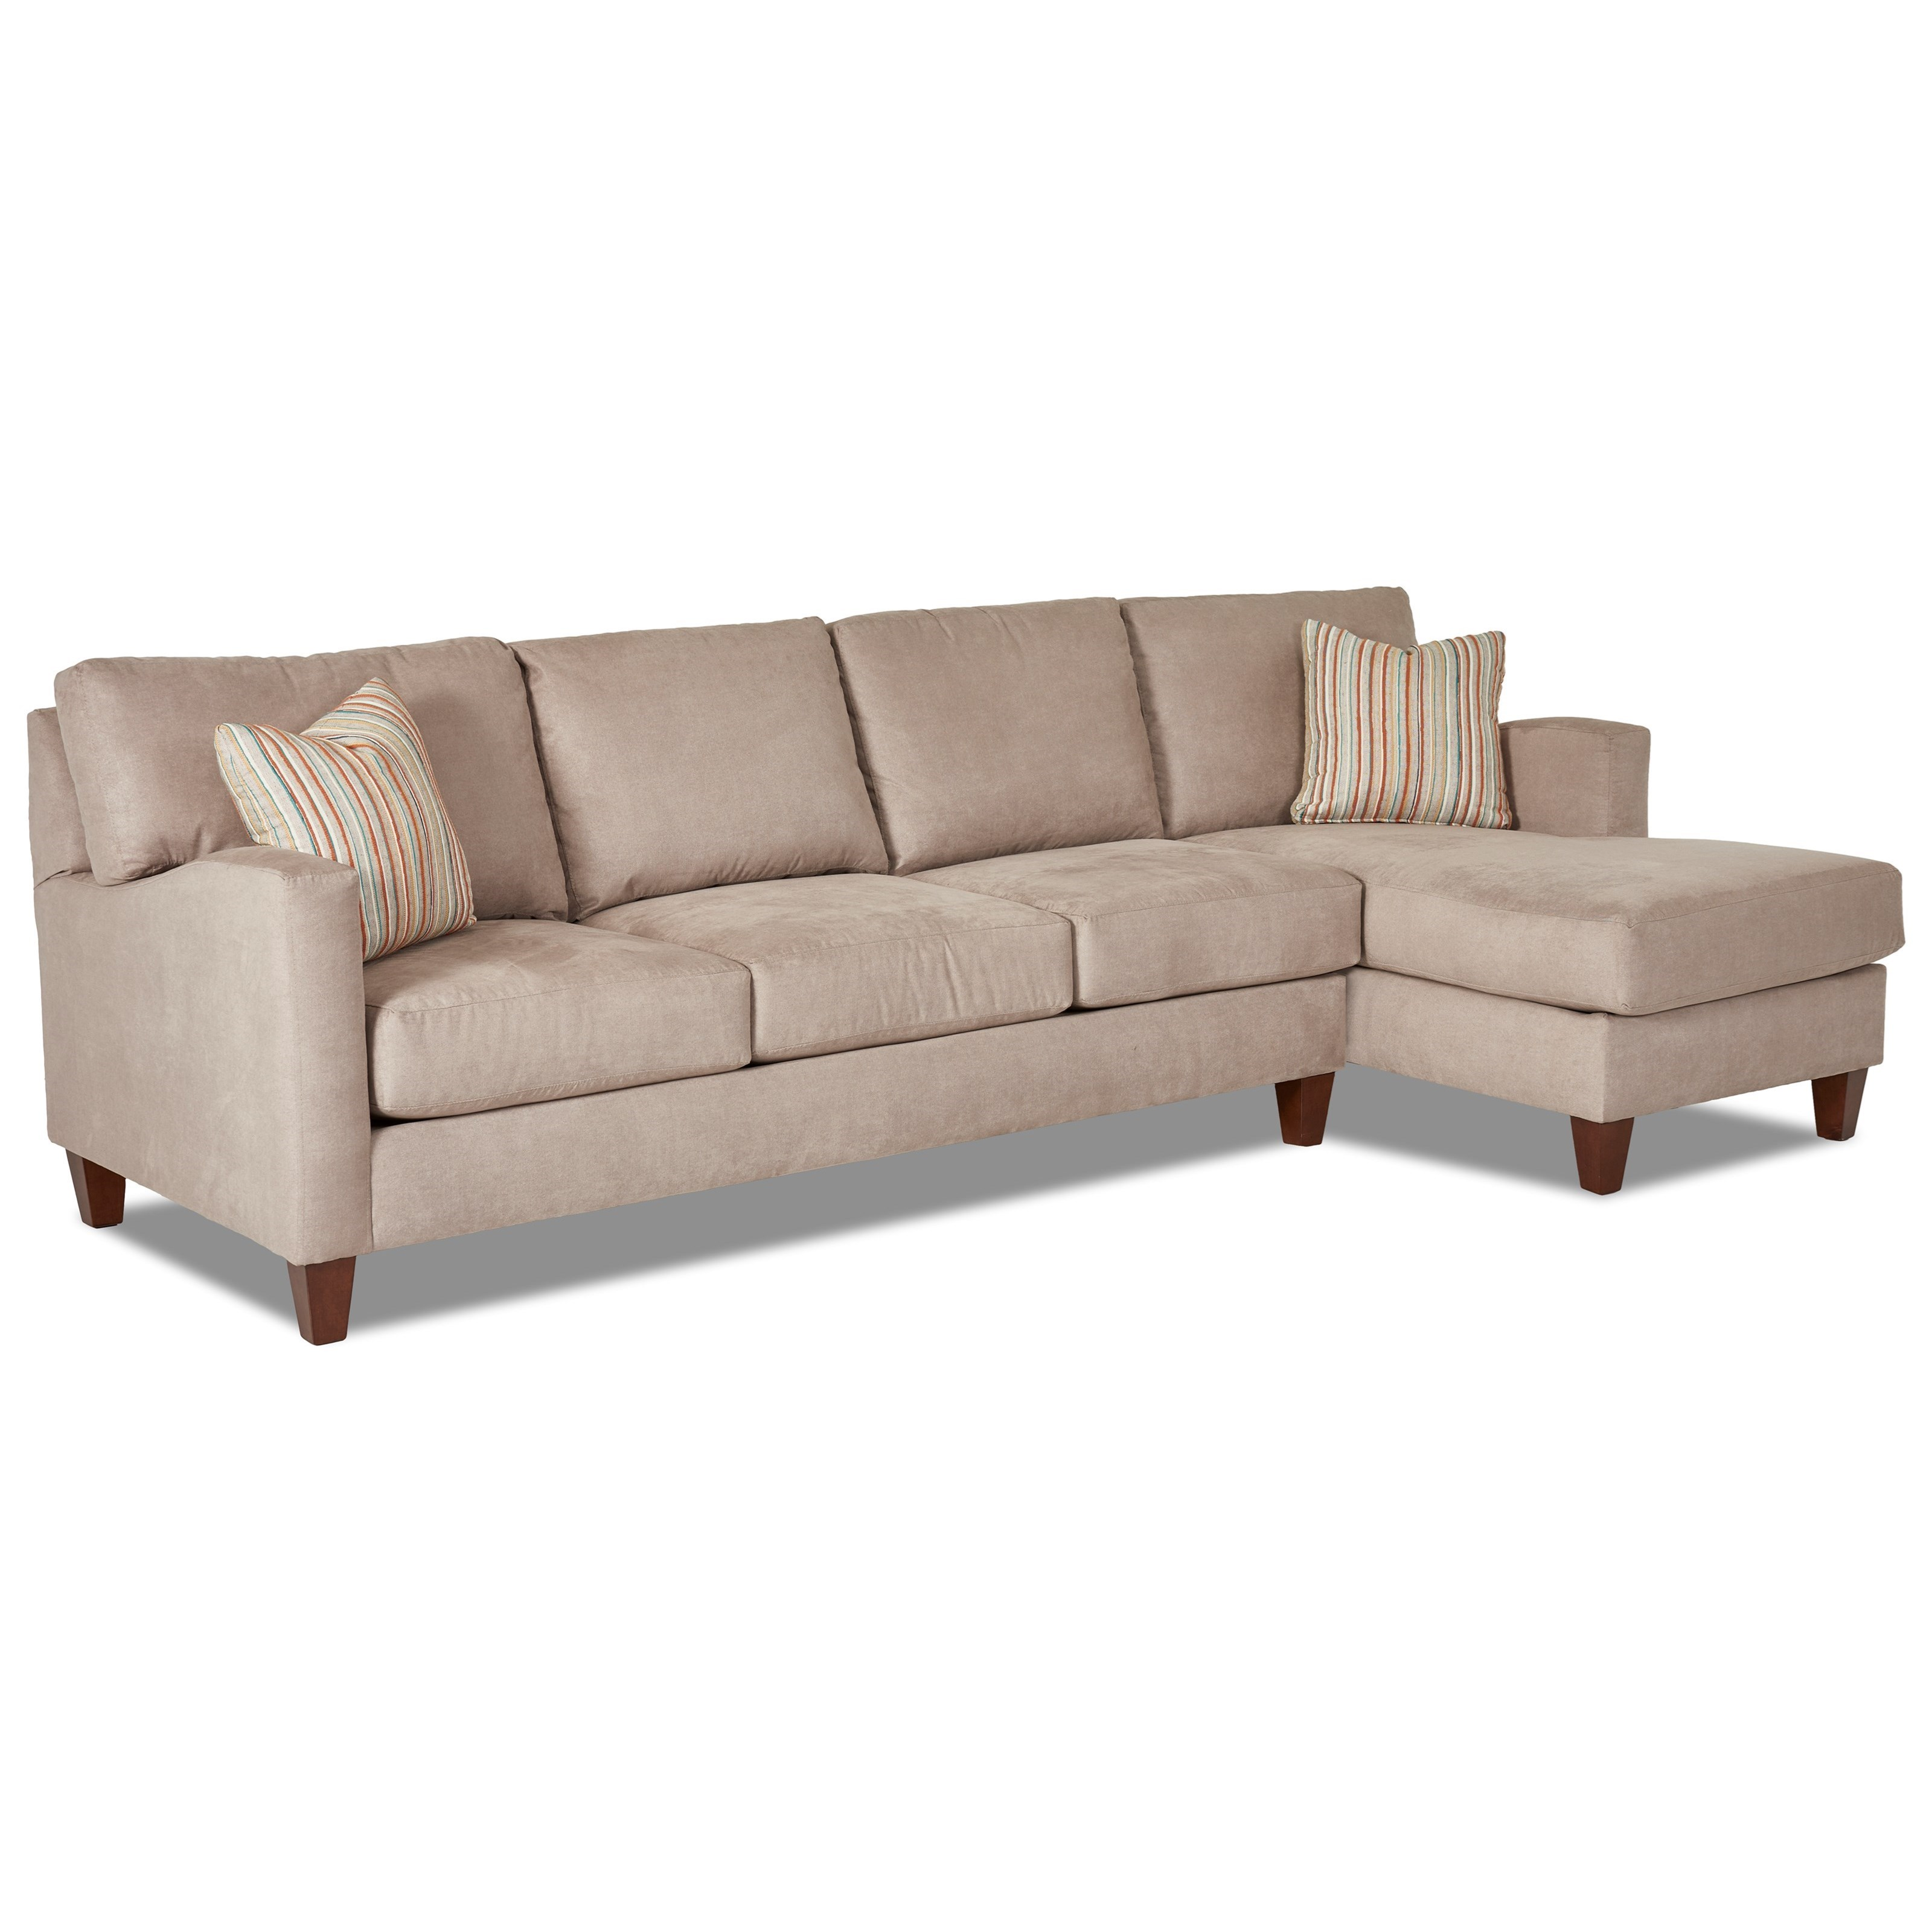 Klaussner colleen two piece stationary sectional with raf for 2 pc sectional with chaise